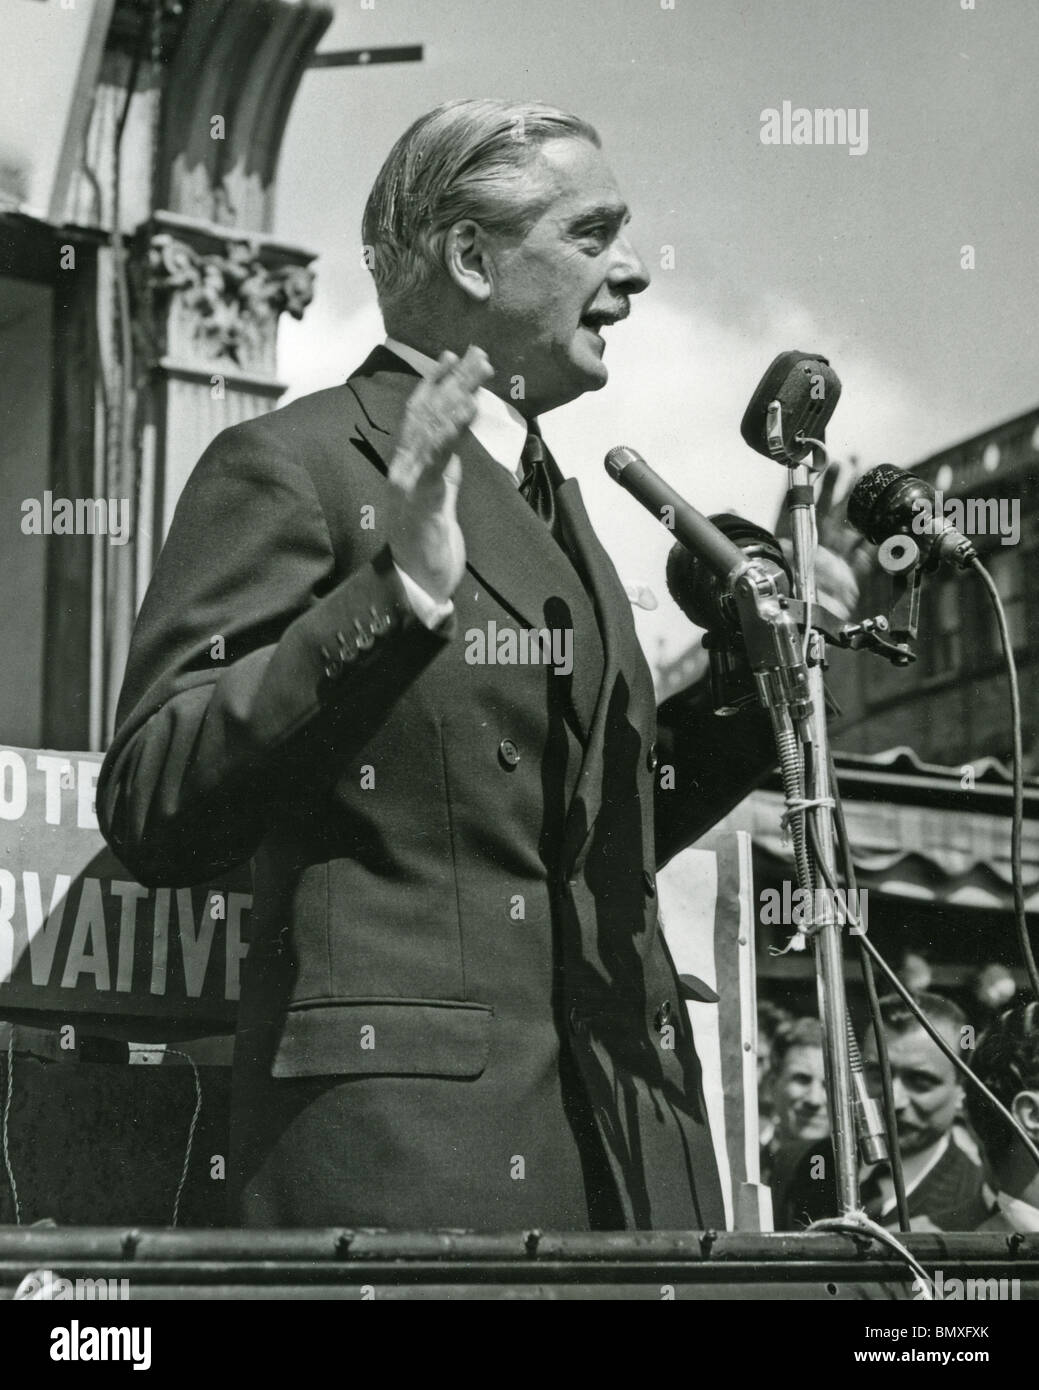 SIR ANTHONY EDEN  campaigning in 1955 when he became British Prime Minister - Stock Image